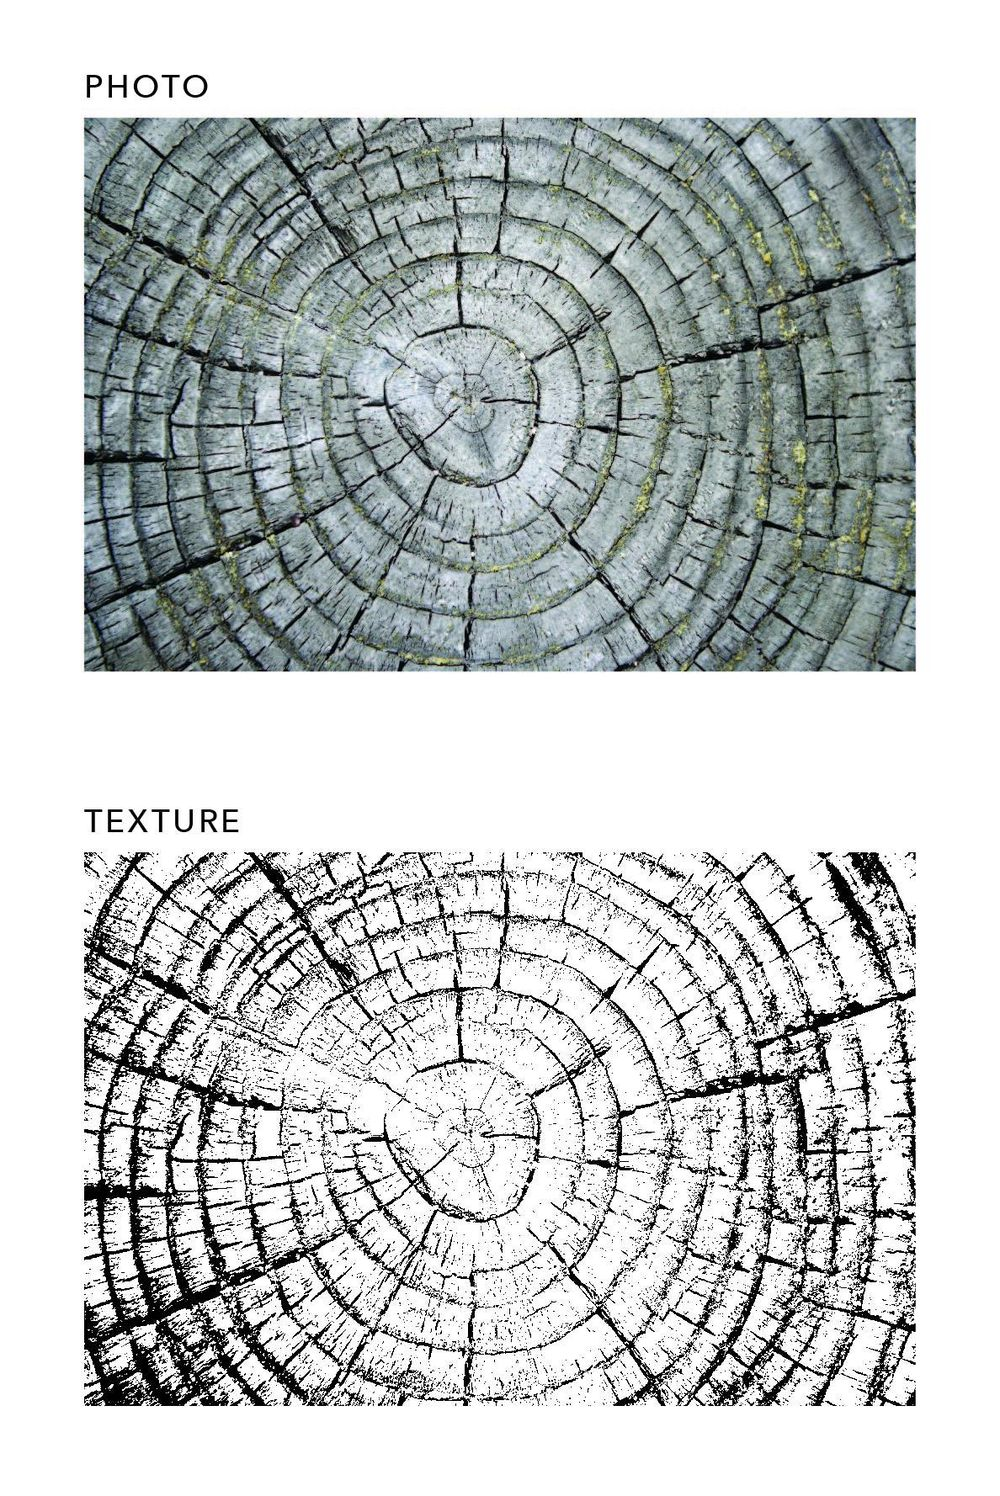 textures! - image 1 - student project